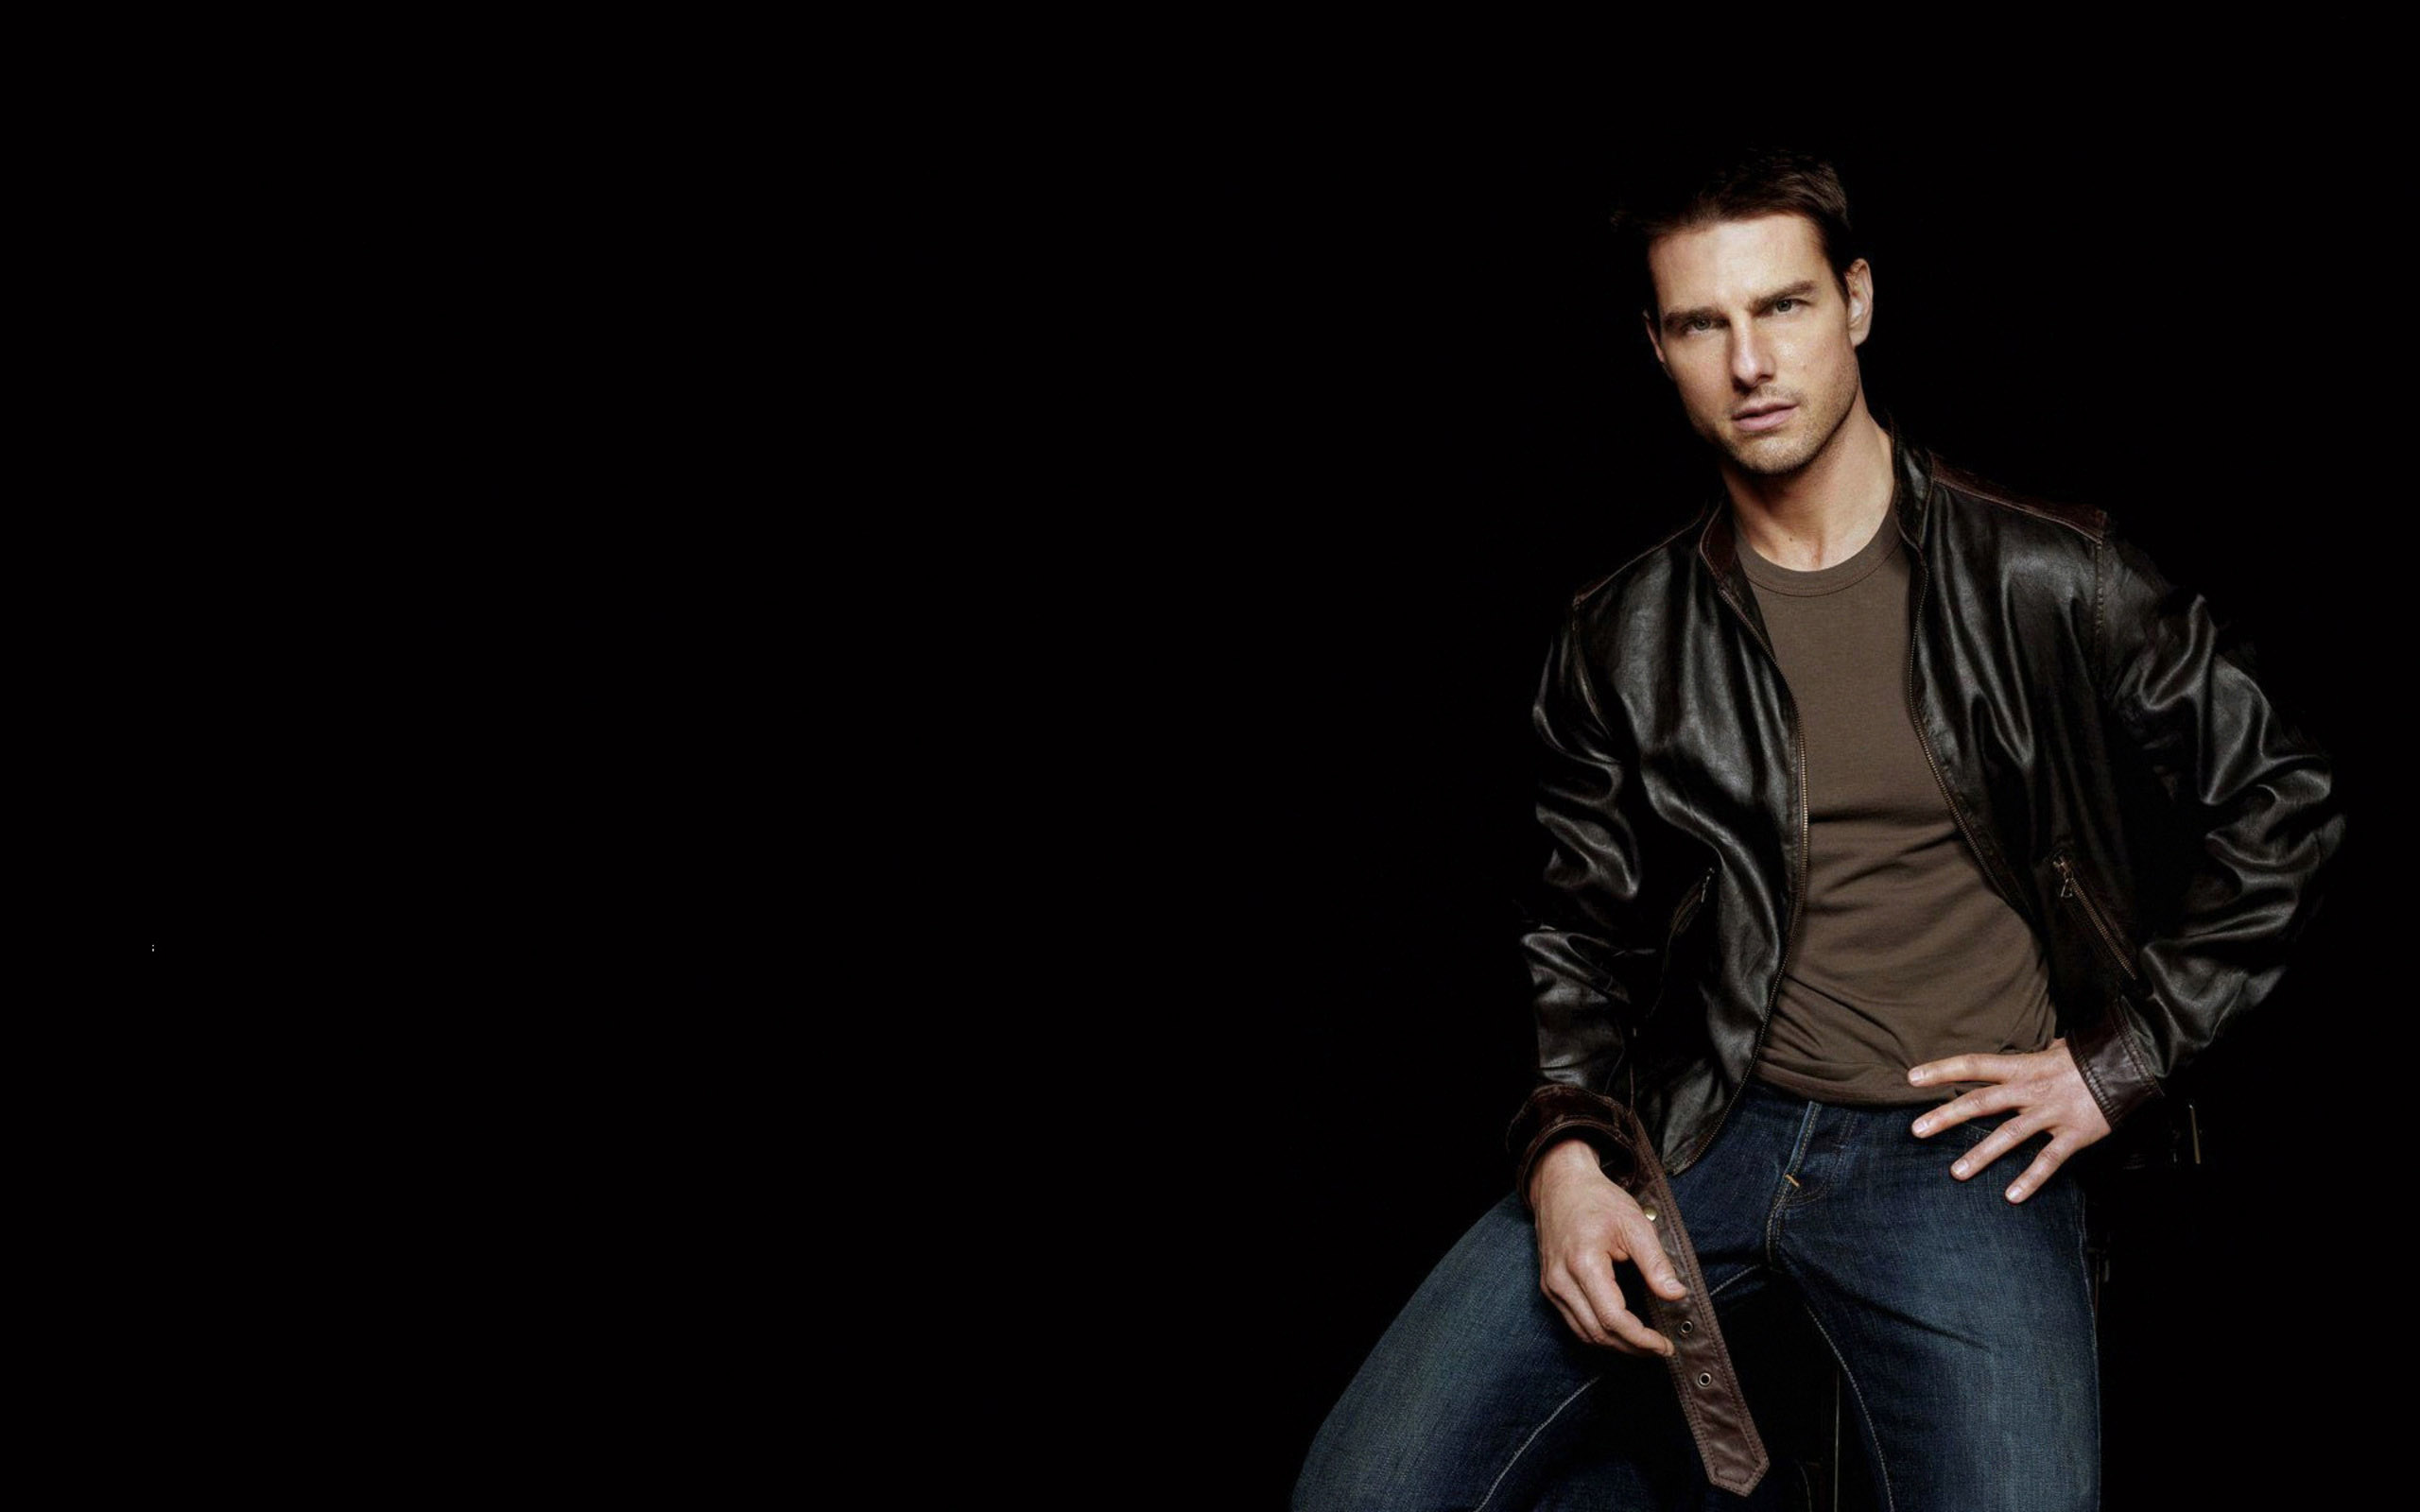 Tom Cruise HD wallpapers PoPoPicscom 2560x1600